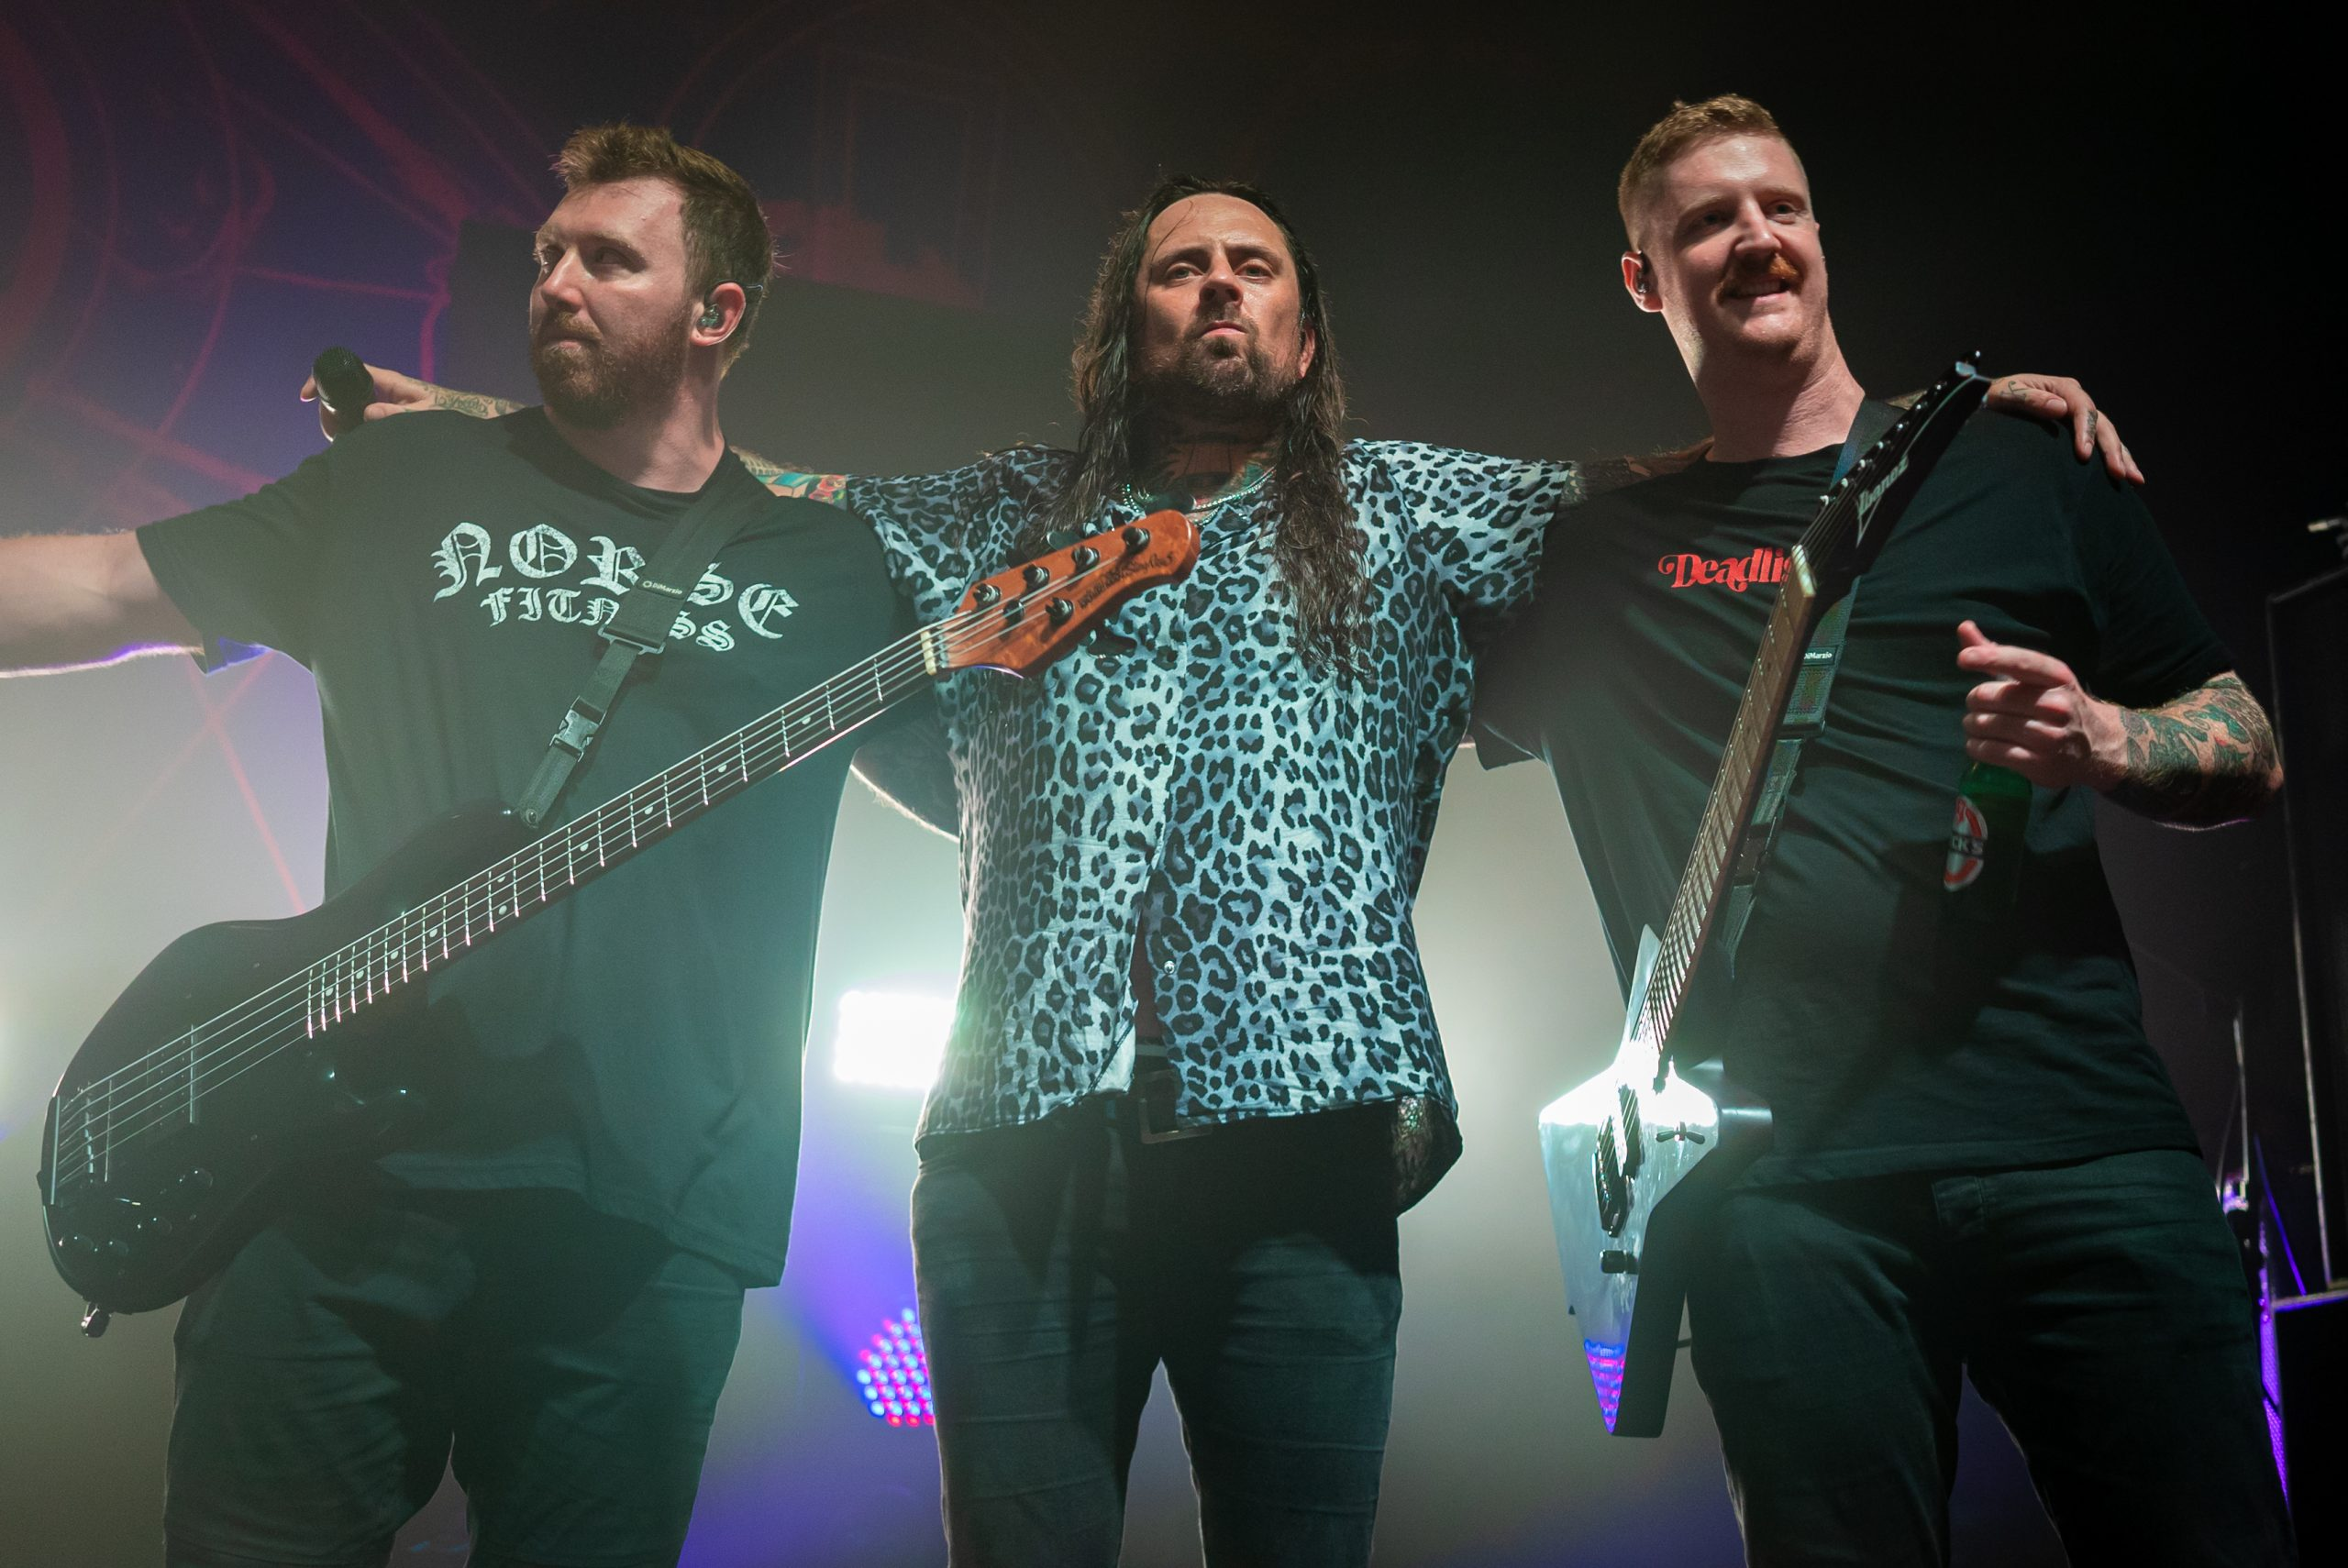 Three members of Thy Art is Murder are standing with their arms around each others shoulder whilst being back lit by purple and white lights. On the left is a bassist, in the middle is the vocalist, and on the right is the guitarist. All three members are part of an Australian death metal band.